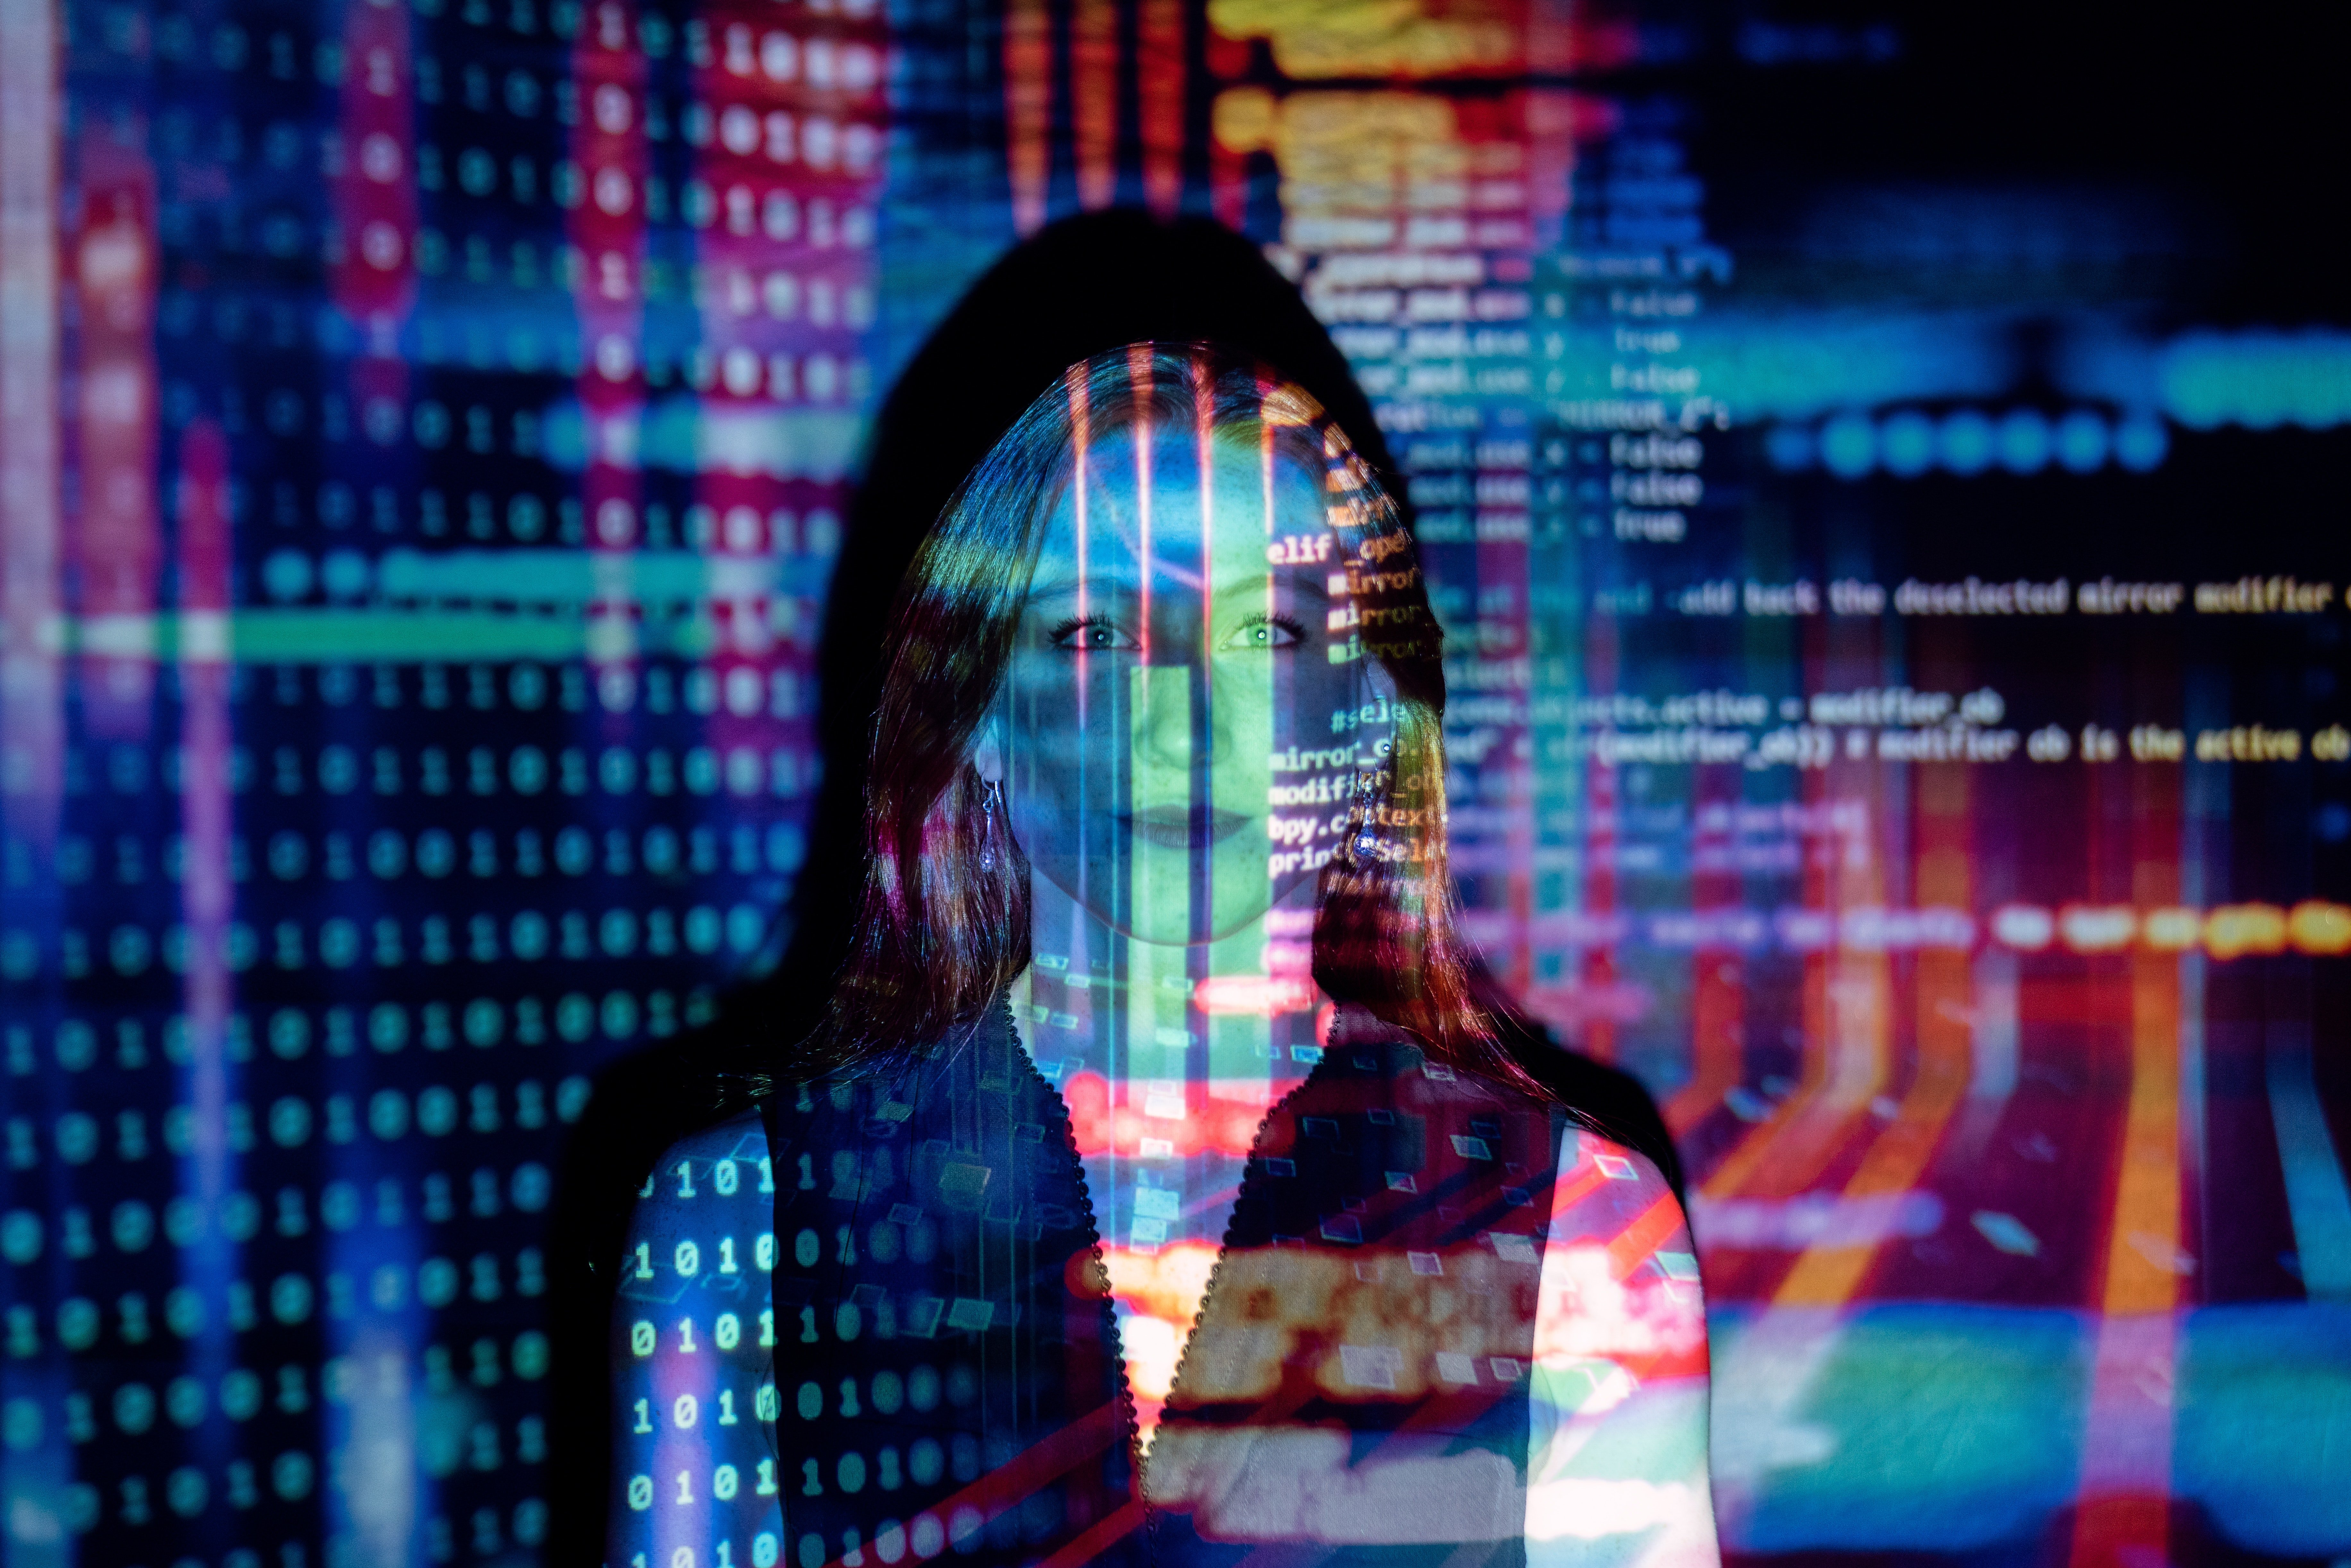 Digital transformation and lockdown. Does opportunity beckon?